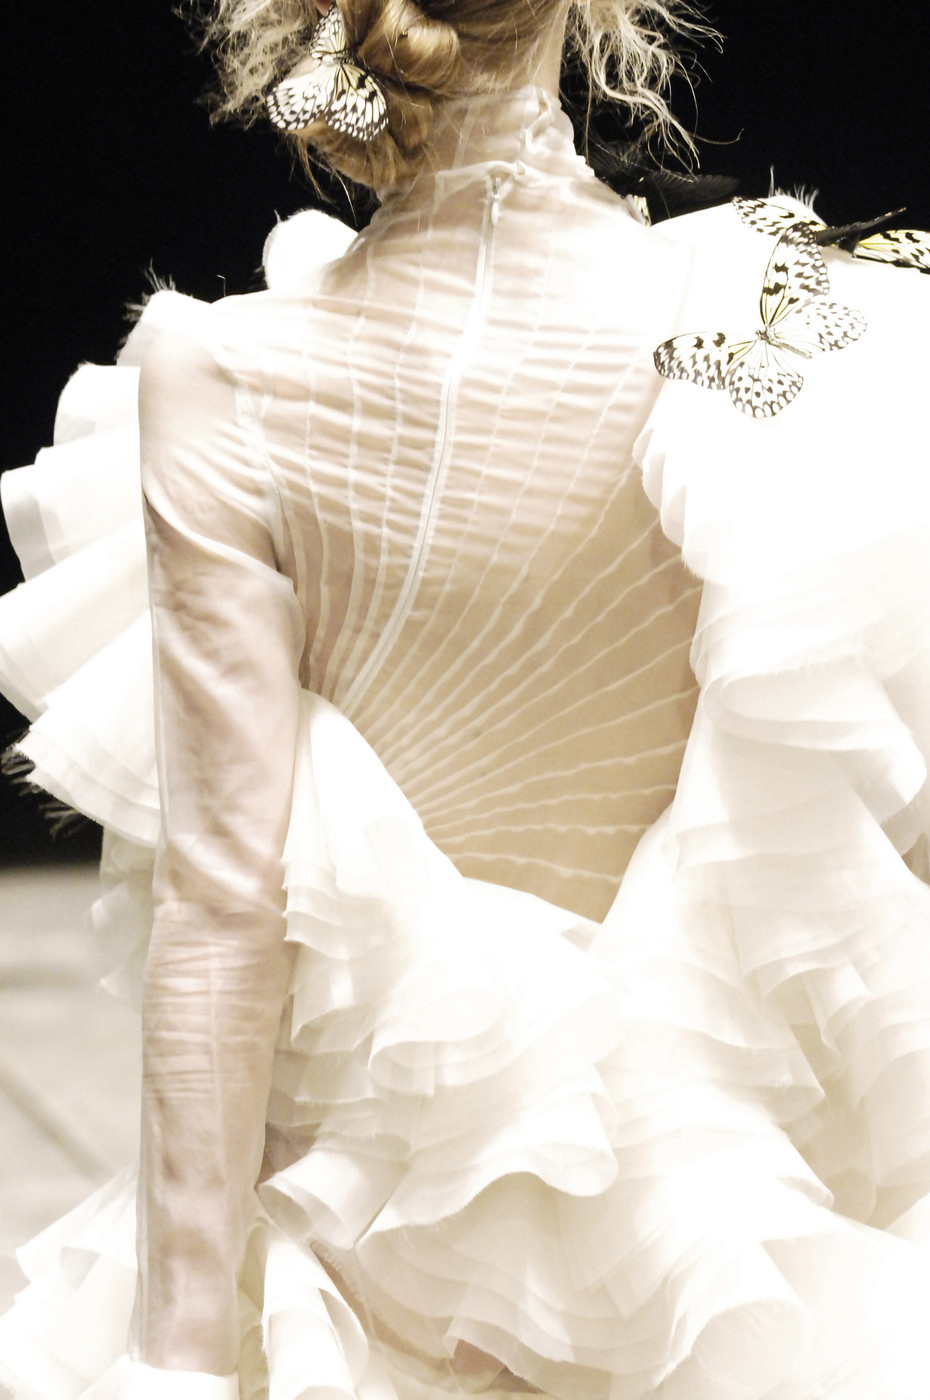 Alexander McQueen Fall 2006 via www.fashionedbylove.co.uk